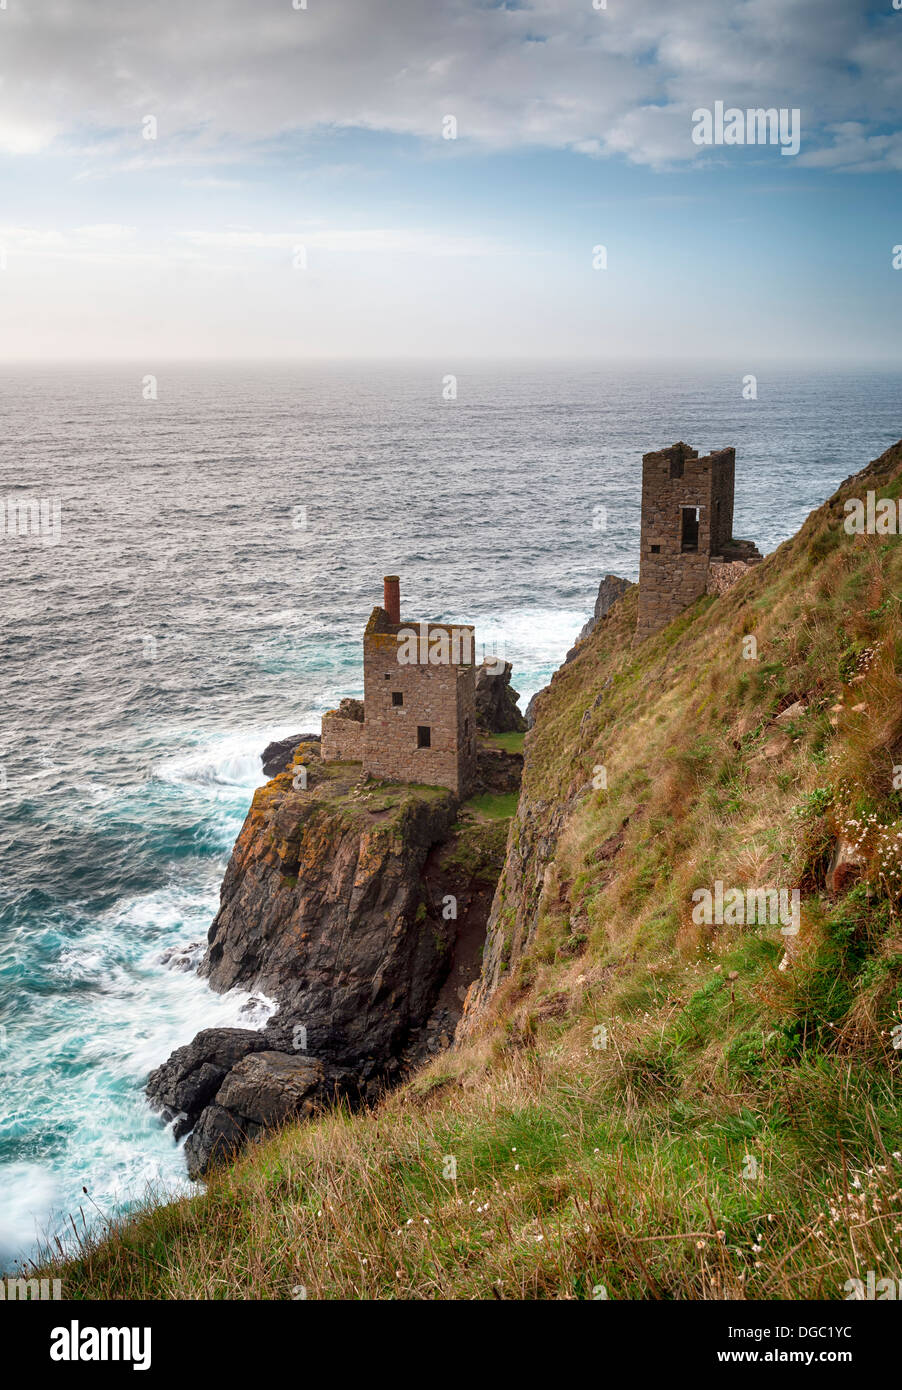 The Crowns at Botallack near Lands End in Cornwall, iconic ruins left over from the Cornish tin mining industry and now a world - Stock Image